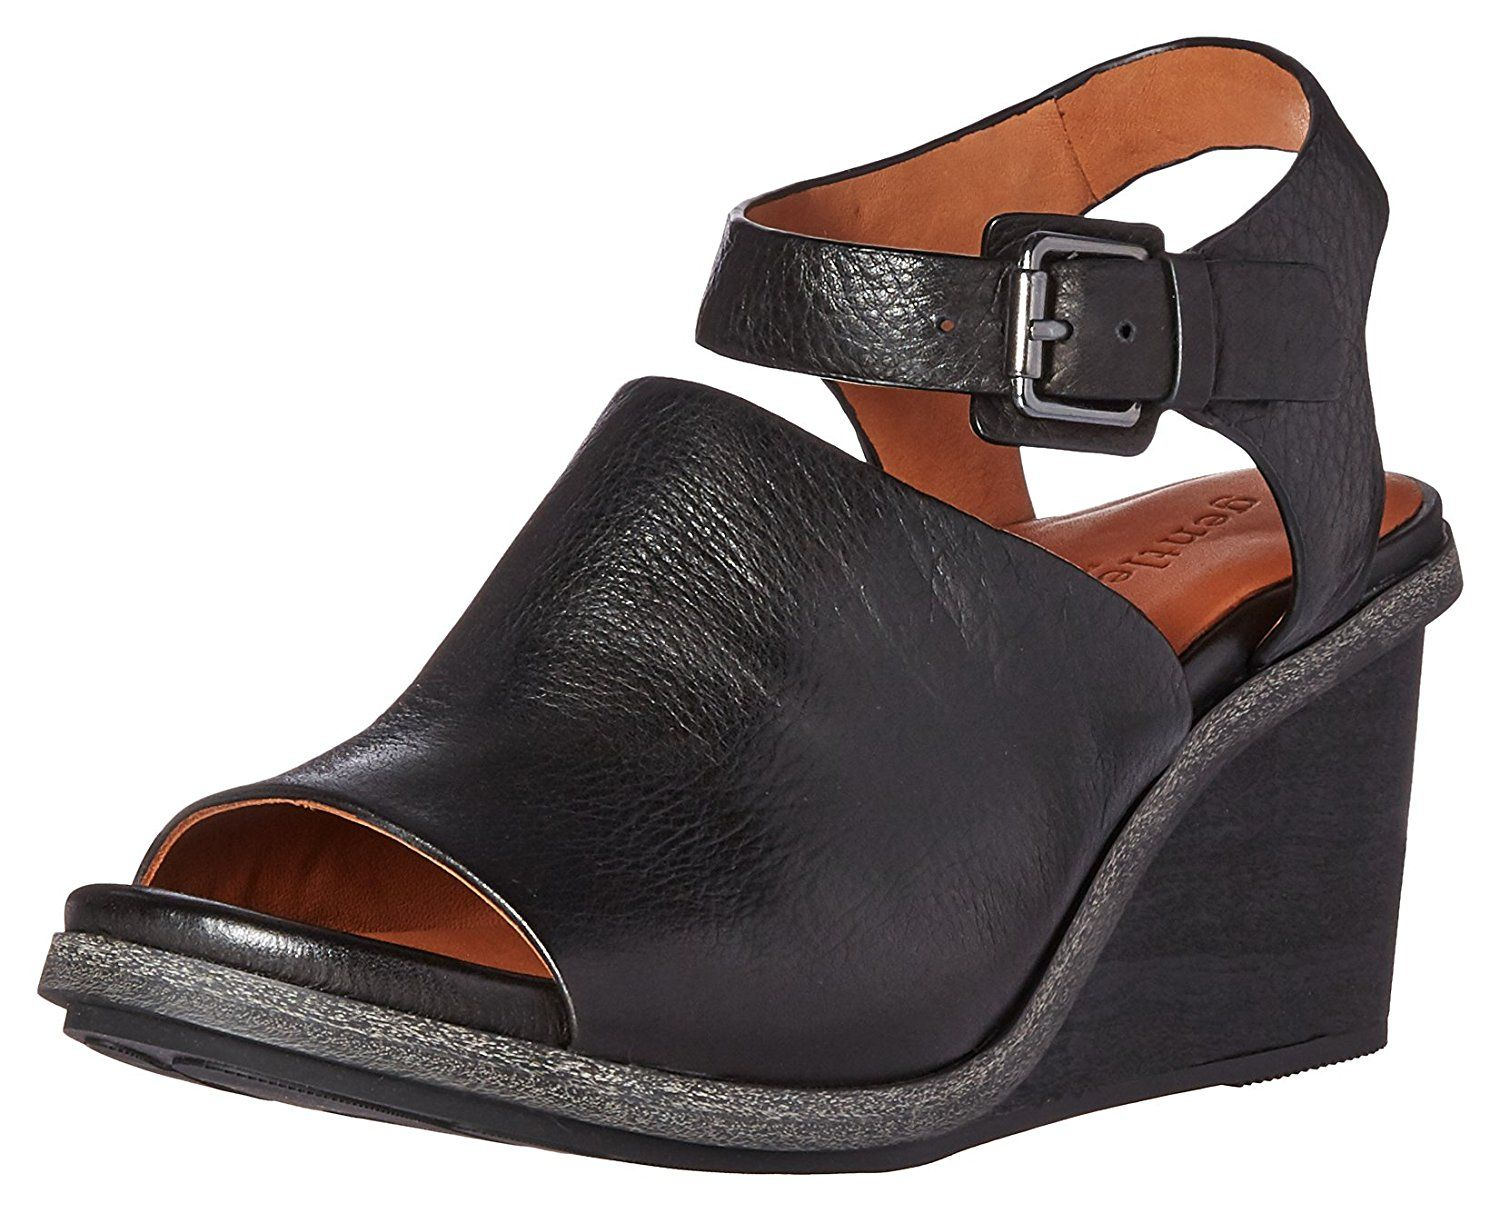 043b2a725bd1 Gentle Souls Women s Gerry Wedge Sandal     Learn more by visiting the  image link